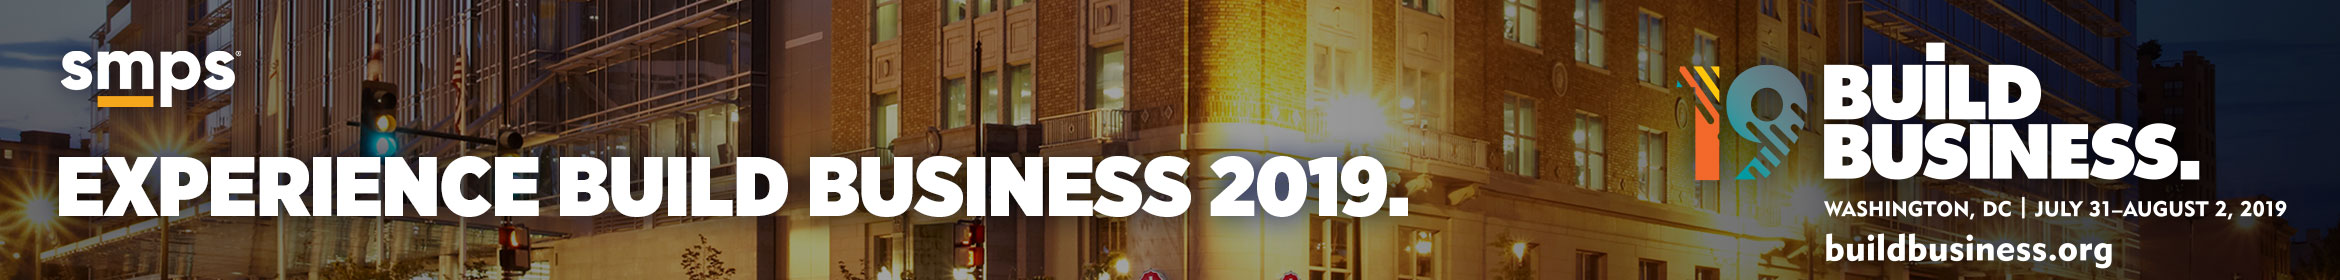 SMPS Build Business 2019 Main banner